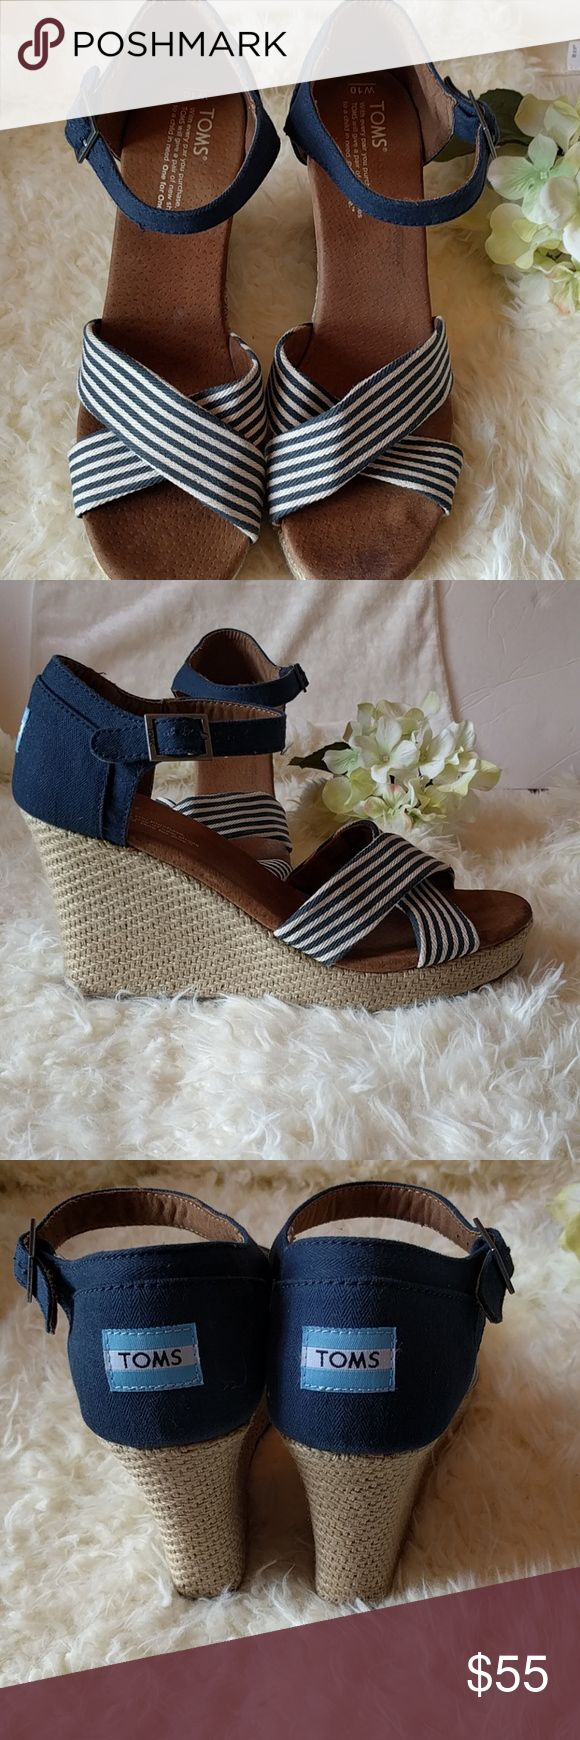 TOMS blue and white espadrille wedges Good used condition. Some minor stains on sole. TOMS Shoes Espadrilles